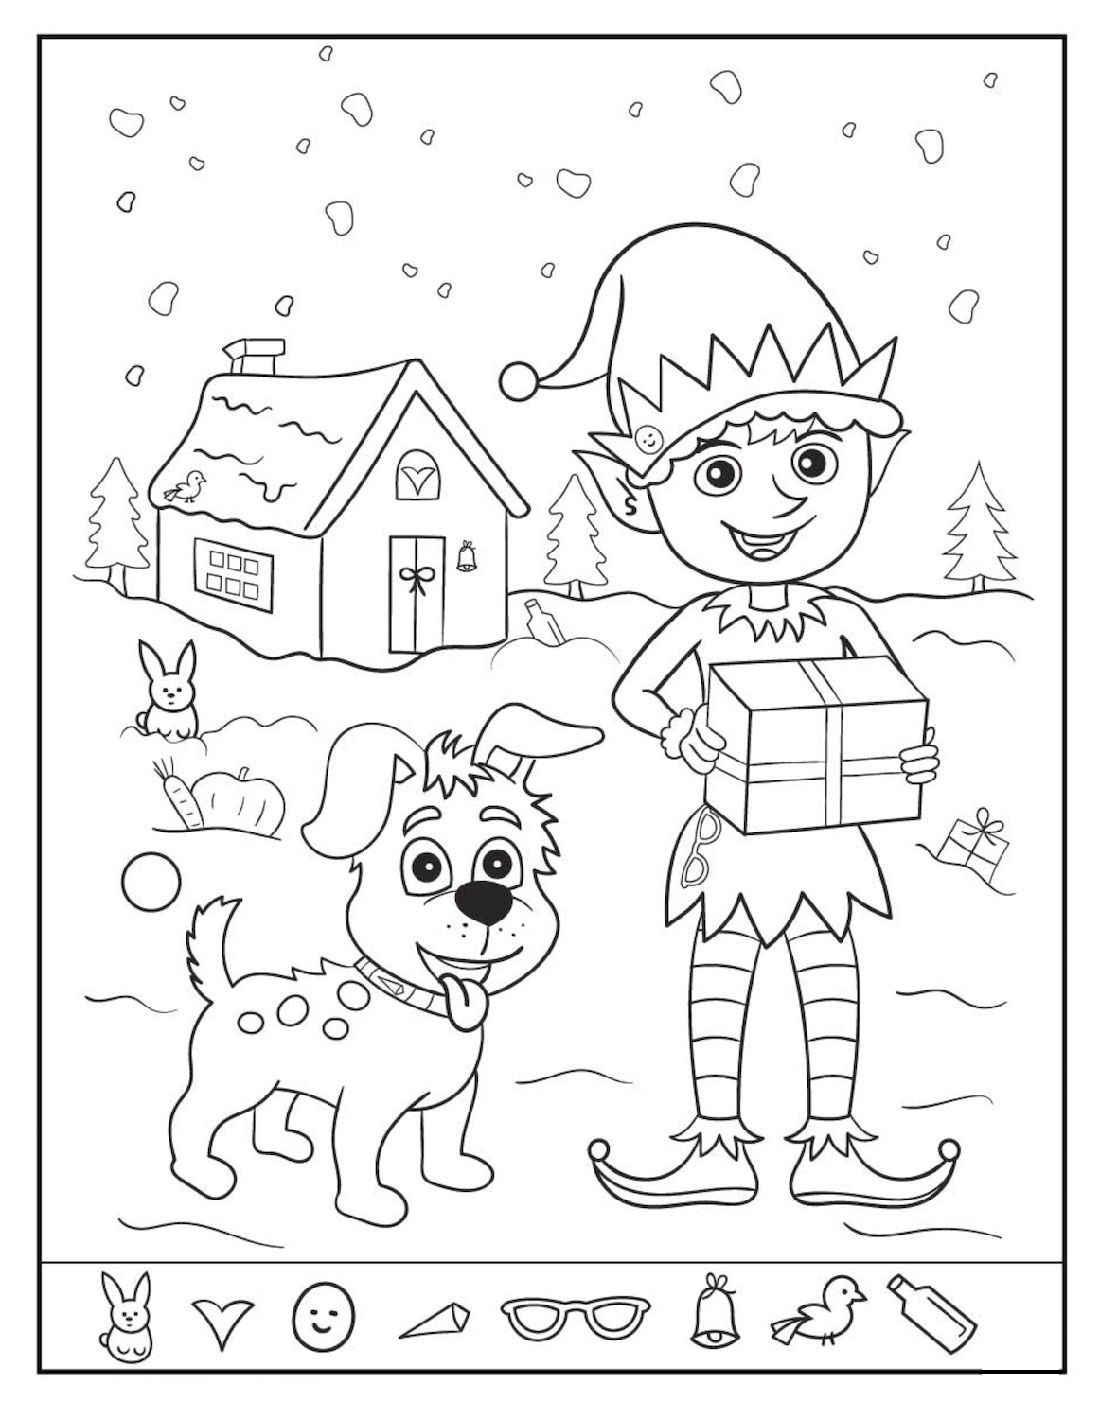 Easy And Hard Hidden Pictures Worksheet Pintable In